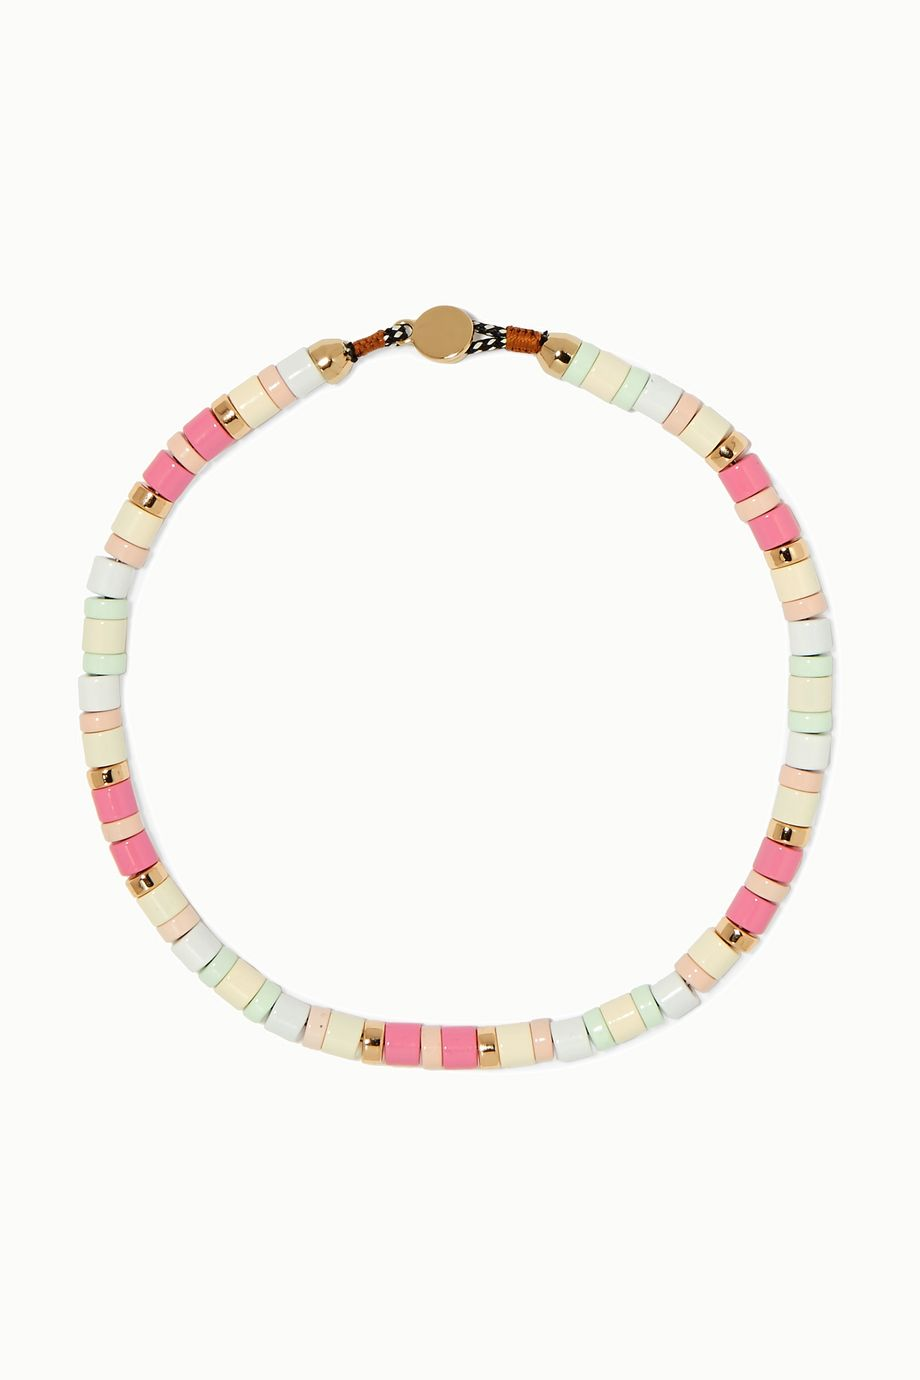 Roxanne Assoulin Bahamas enamel necklace